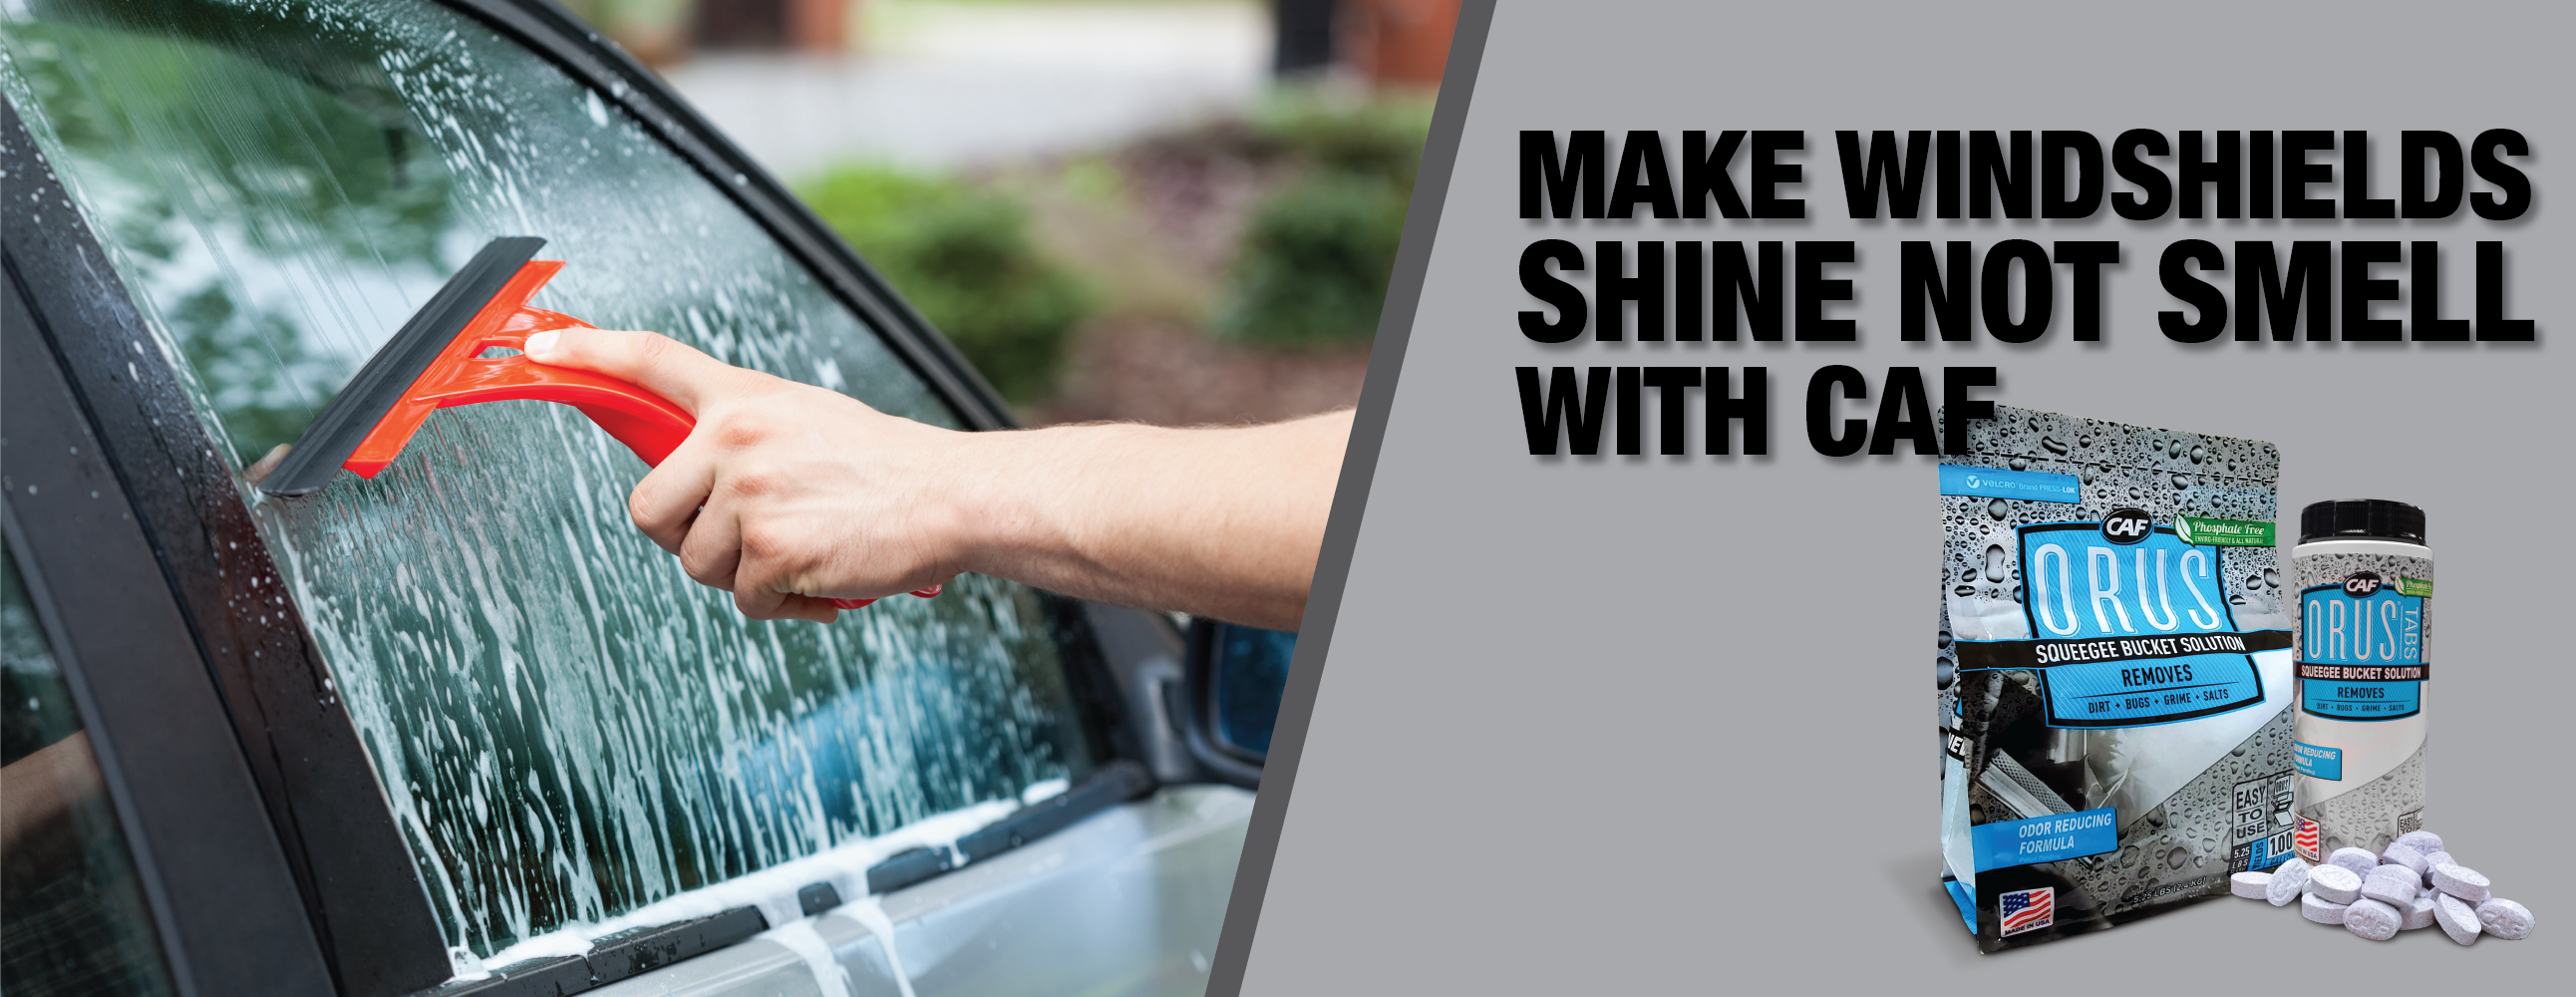 How to Get Rid of Bugs on Windshield - no scrubbing!